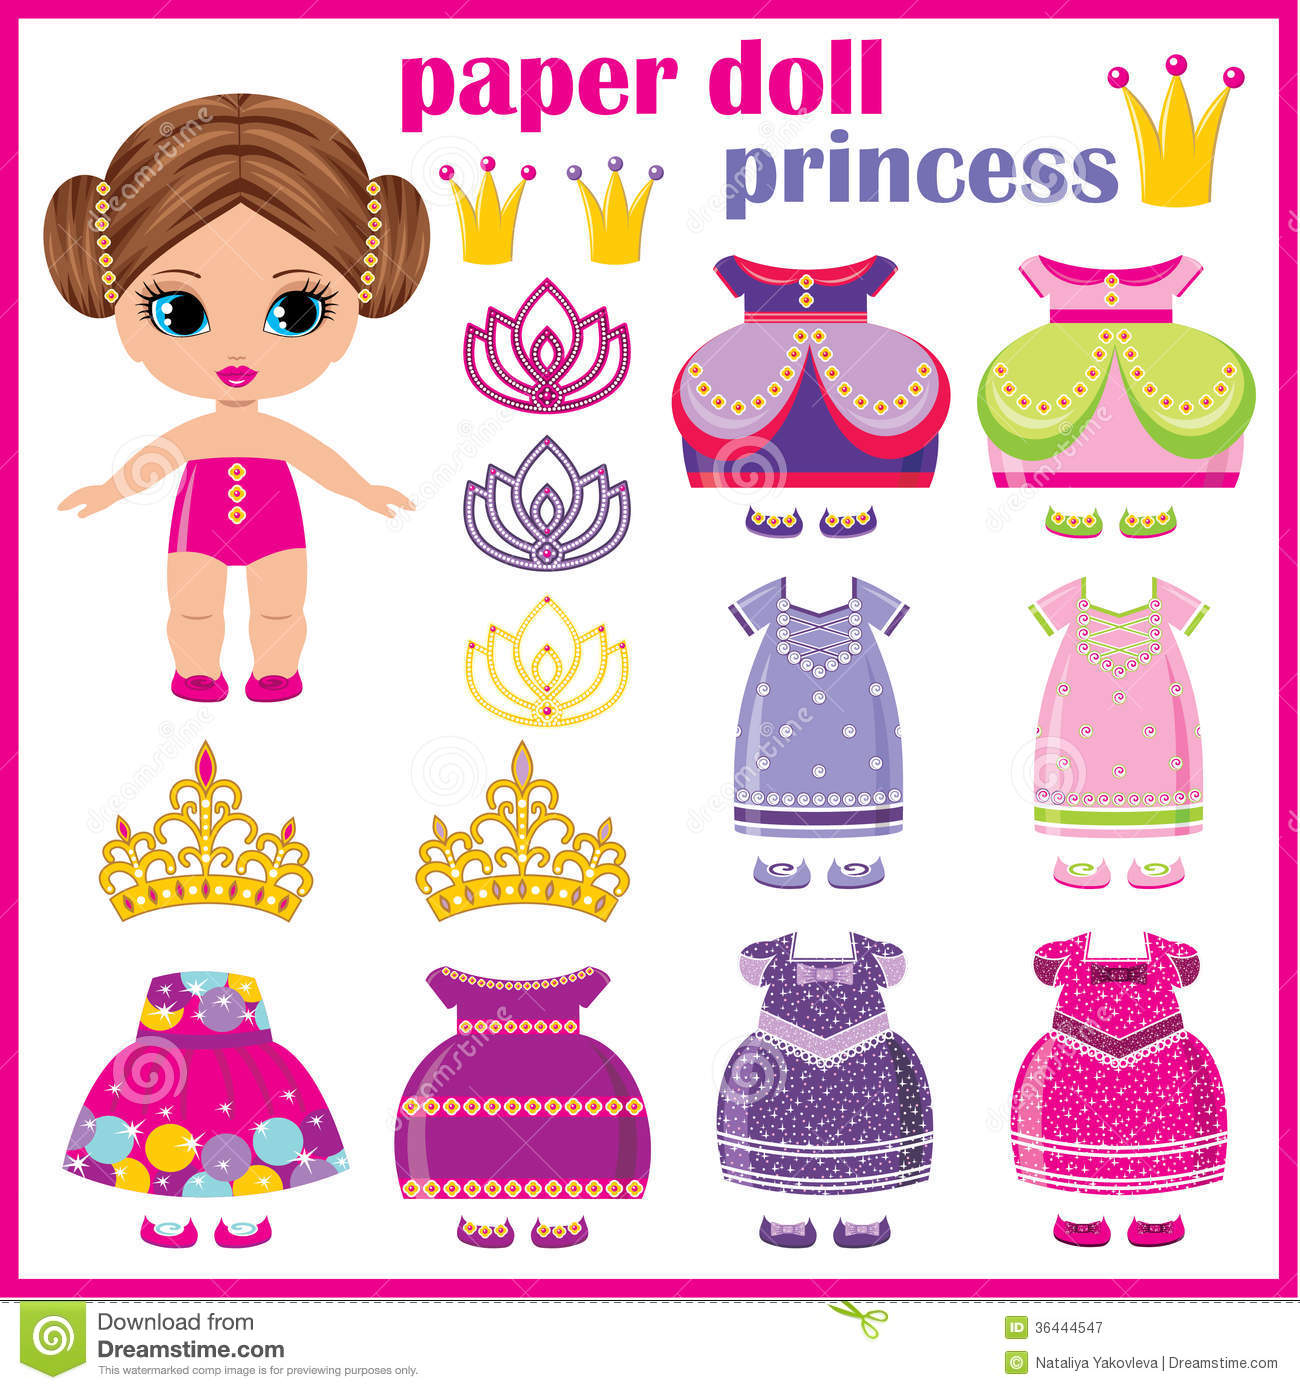 Post_printable Princess Paper Doll Clothes_172403 on Coloring People Cut Outs